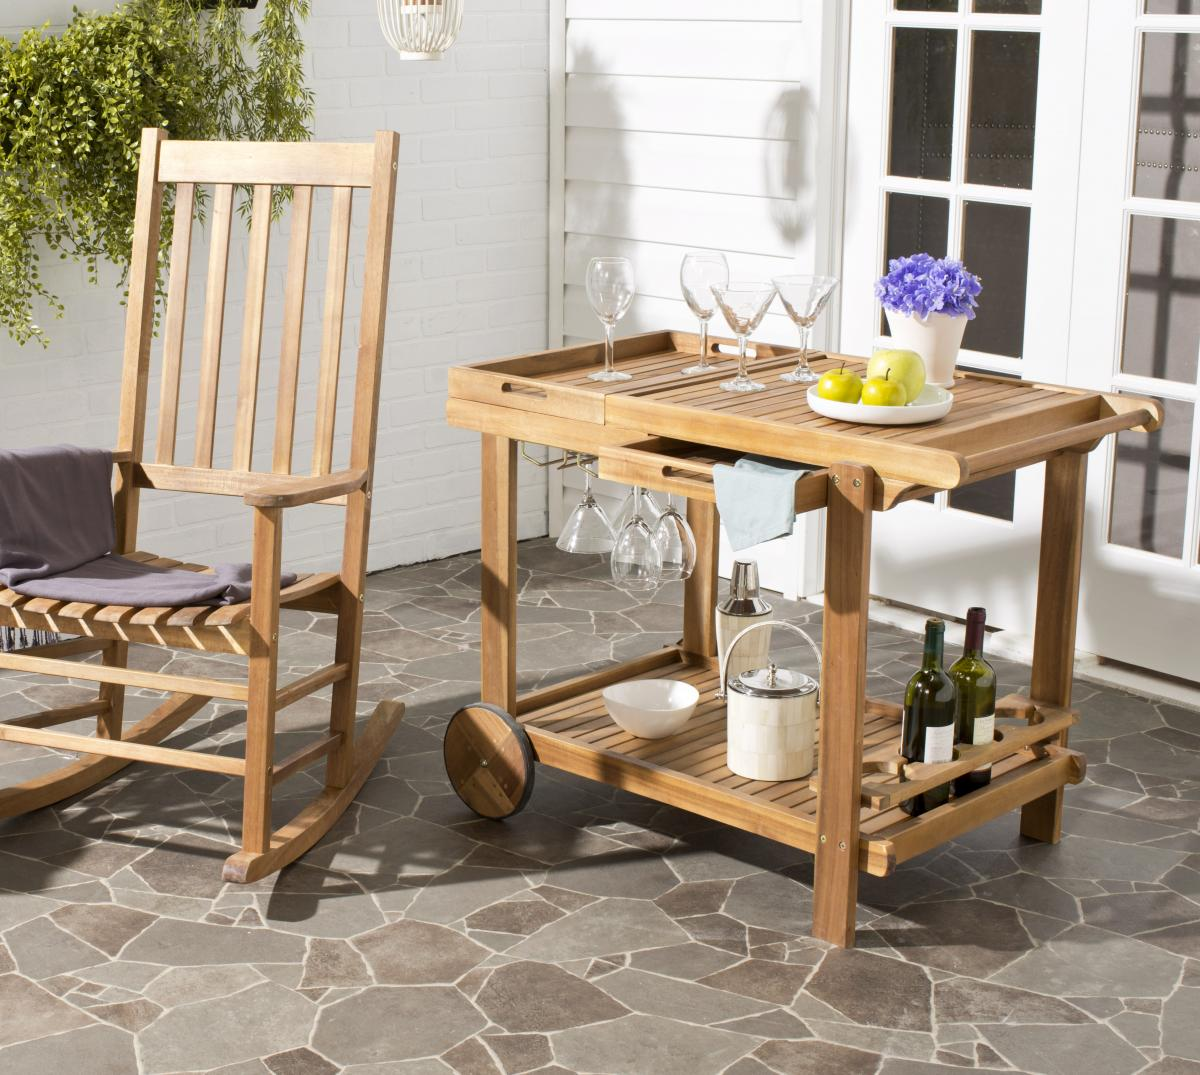 Safavieh Home Furniture: PAT7010A Bar Carts, Outdoor Bar, Outdoor Home Furnishings